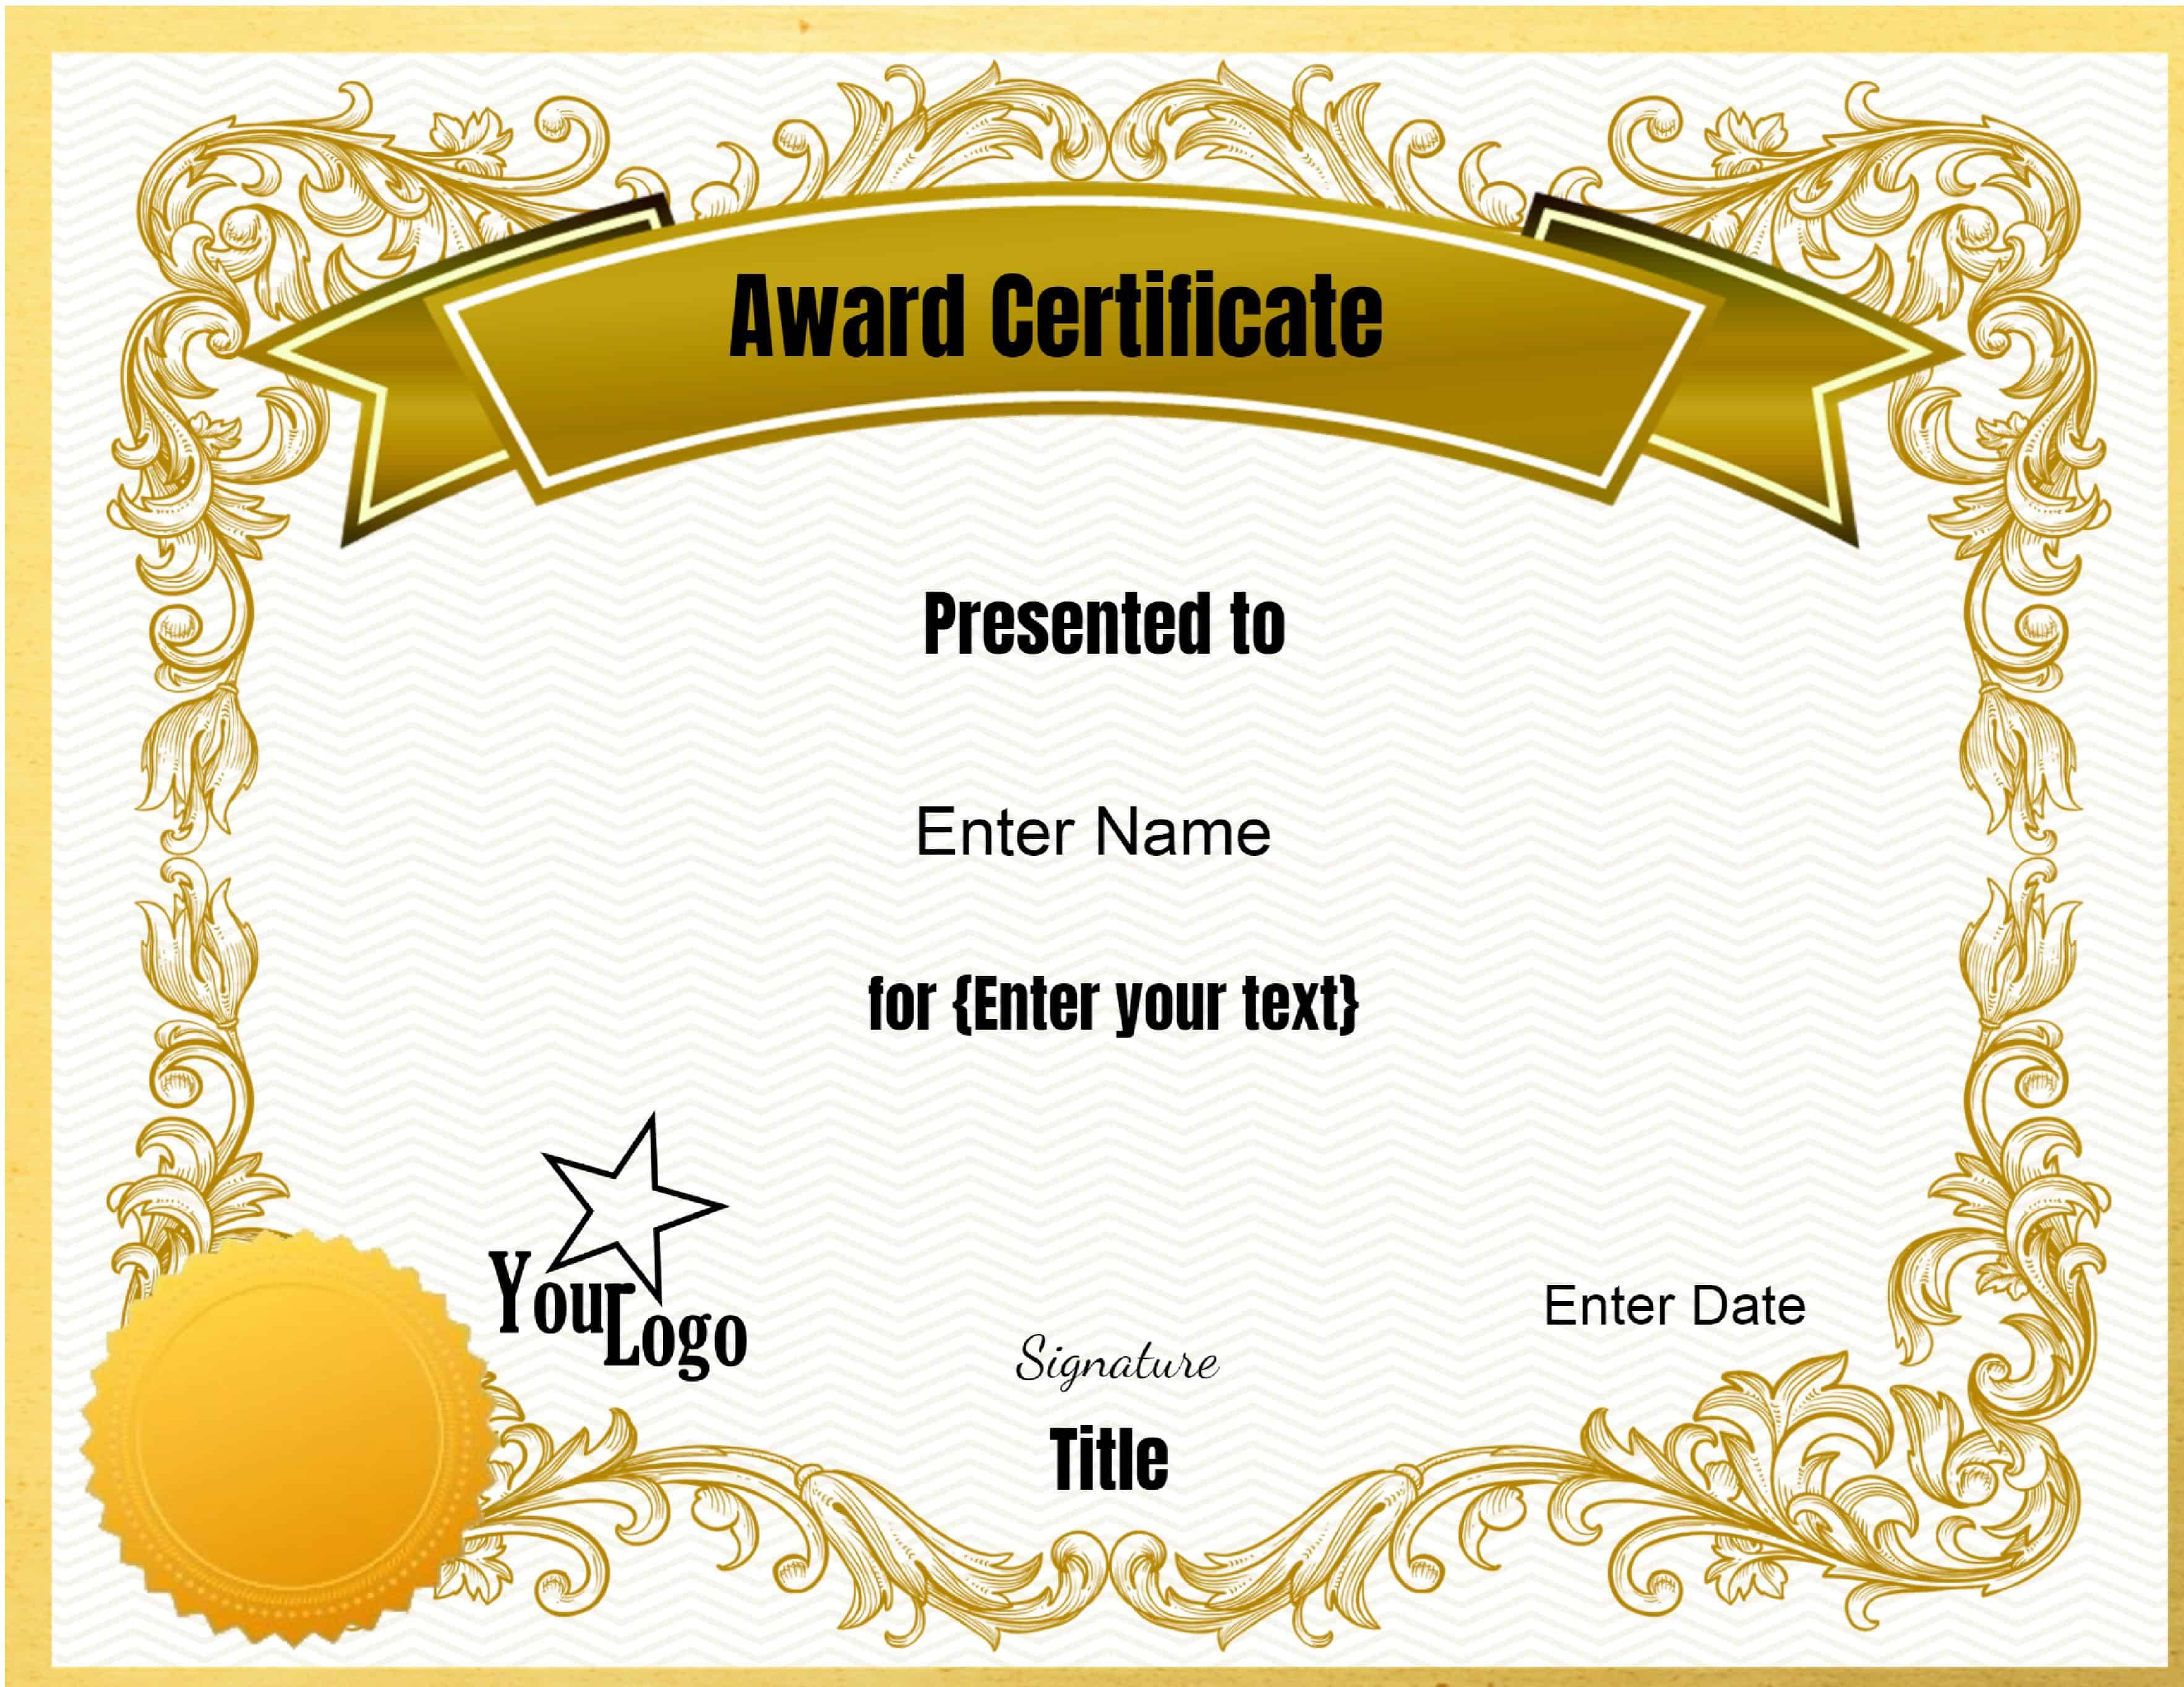 Pin By Cathy De On Screenshots Awards Certificates Template Certificate Design Template Free Certificate Templates Make your own certificate templates